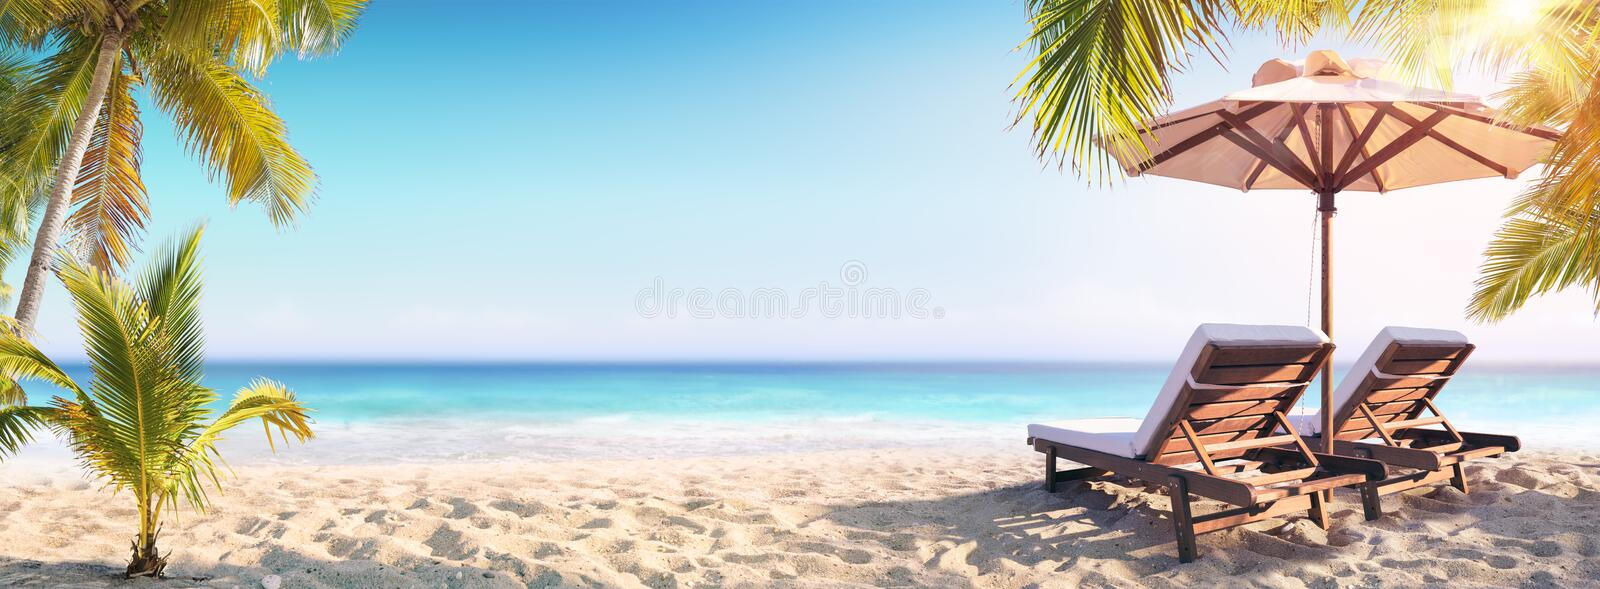 Deckchairs And Parasol With Palm Trees royalty free stock photo